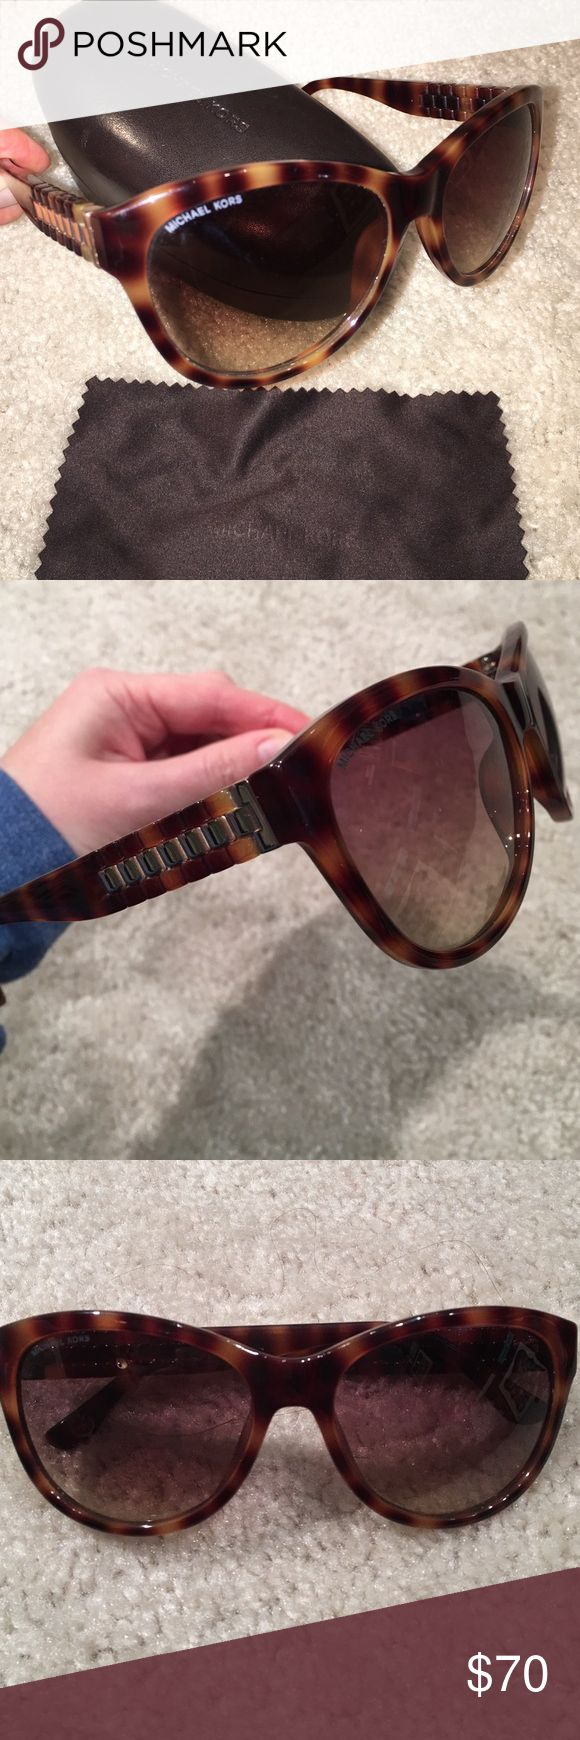 """Michael Michael Kors Tortoise Sunglasses with Case Michael Michael Kors """"Olivia"""" Tortoise Sunglasses with Case. Great condition very little wear shown. Comes with original hard case & lense cleaner. MICHAEL Michael Kors Accessories Sunglasses"""